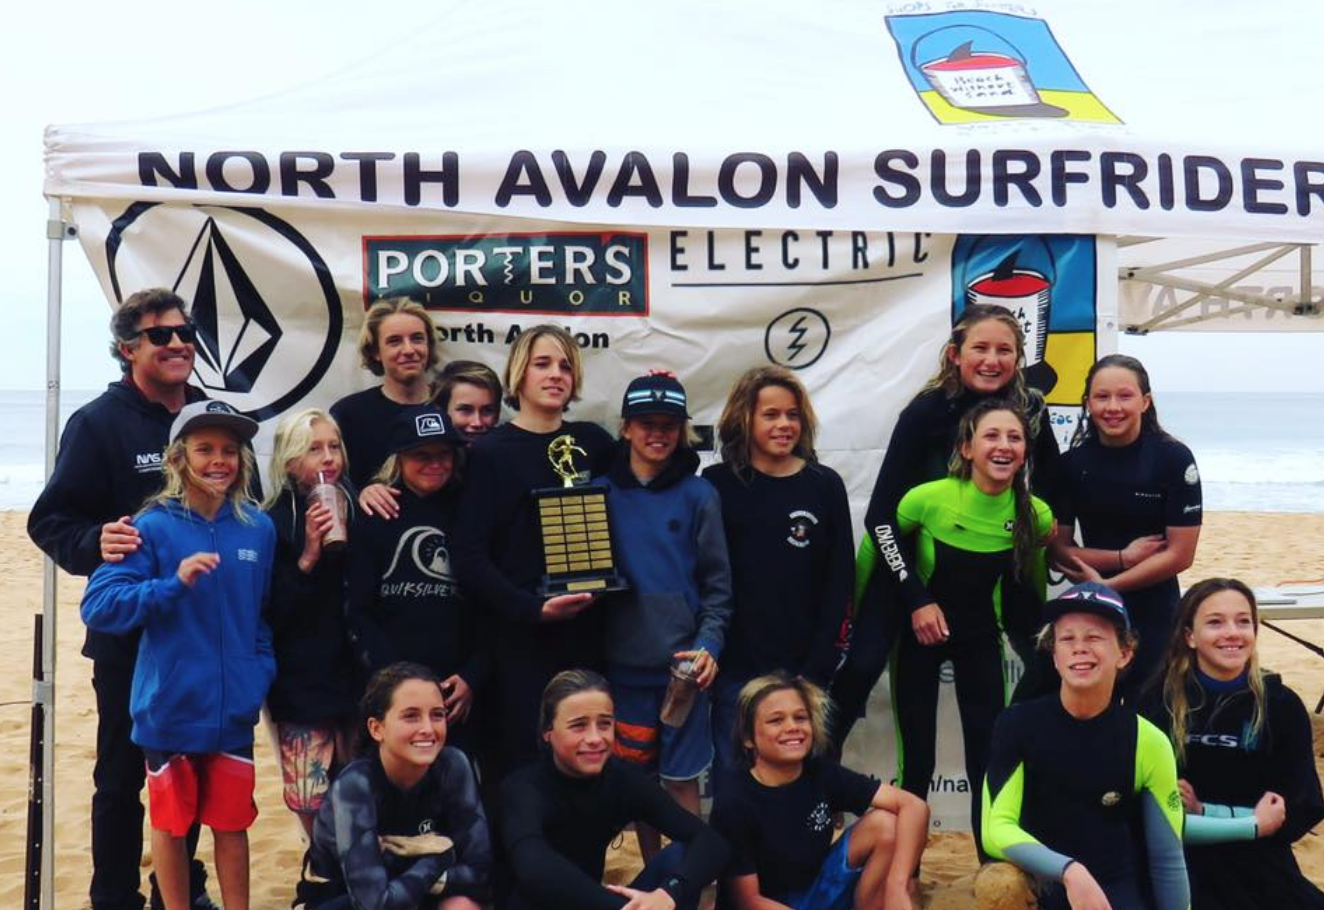 NORTH AVALON SURFRIDERS ASSOCIATION (or NASA) was first established in the 1970s and continues to support the surfers of the Avalon Beach and surrounding communities. The club runs monthly competition rounds from legends and former World Champions right through to future champions in the grommets and micro groms. The club has a proud and strong history in supporting and developing top athletes. NASA is also named as one of the top clubs in Australia with regular representation in regional, state and national events as well as teams events.   Find out more about NASA HERE .